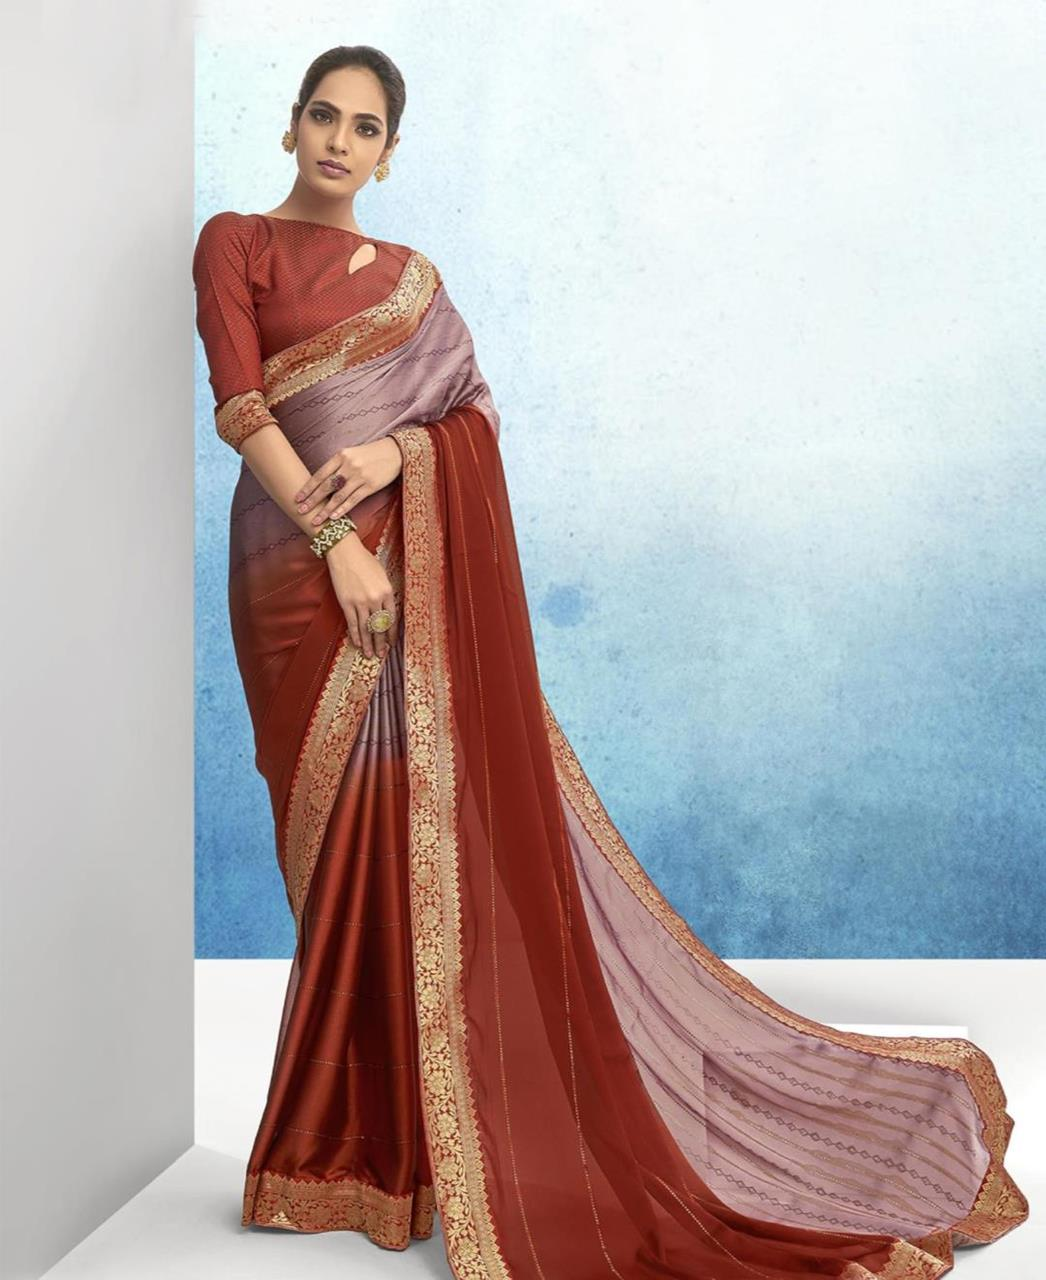 Lace Chiffon Saree in Rust